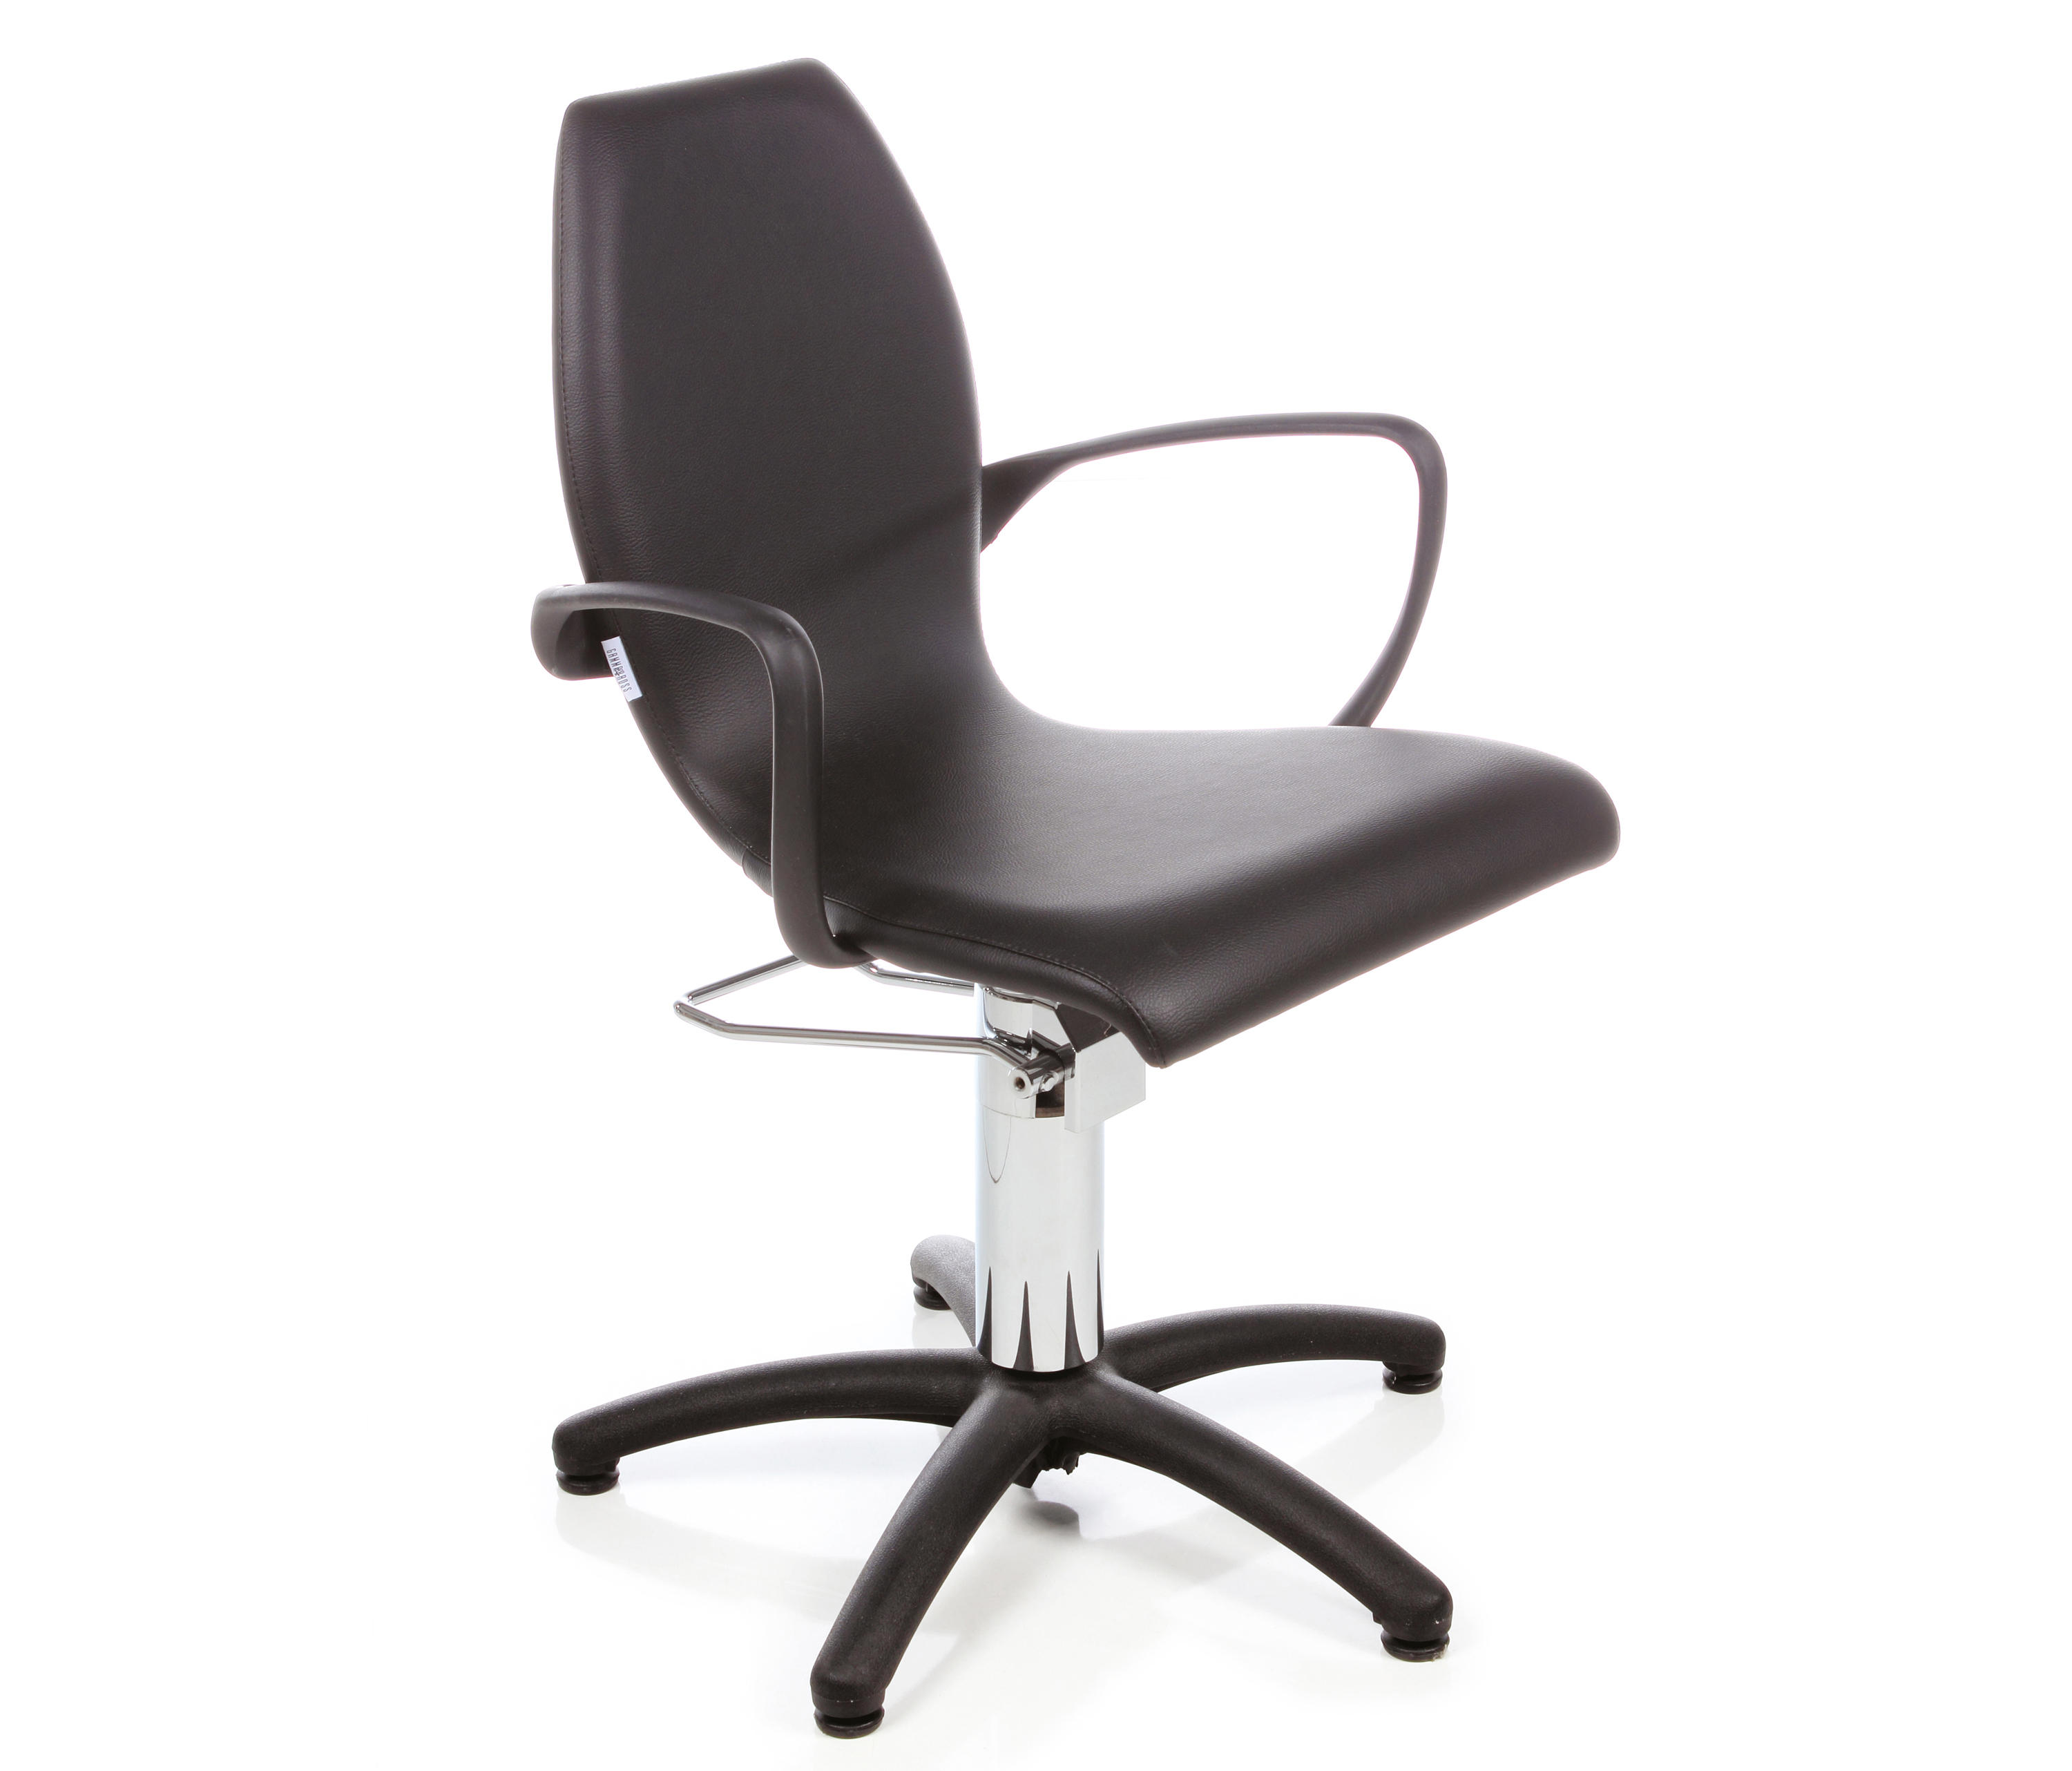 BLACK NIKE I GAMMASTORE STYLING SALON CHAIR Barber chairs from